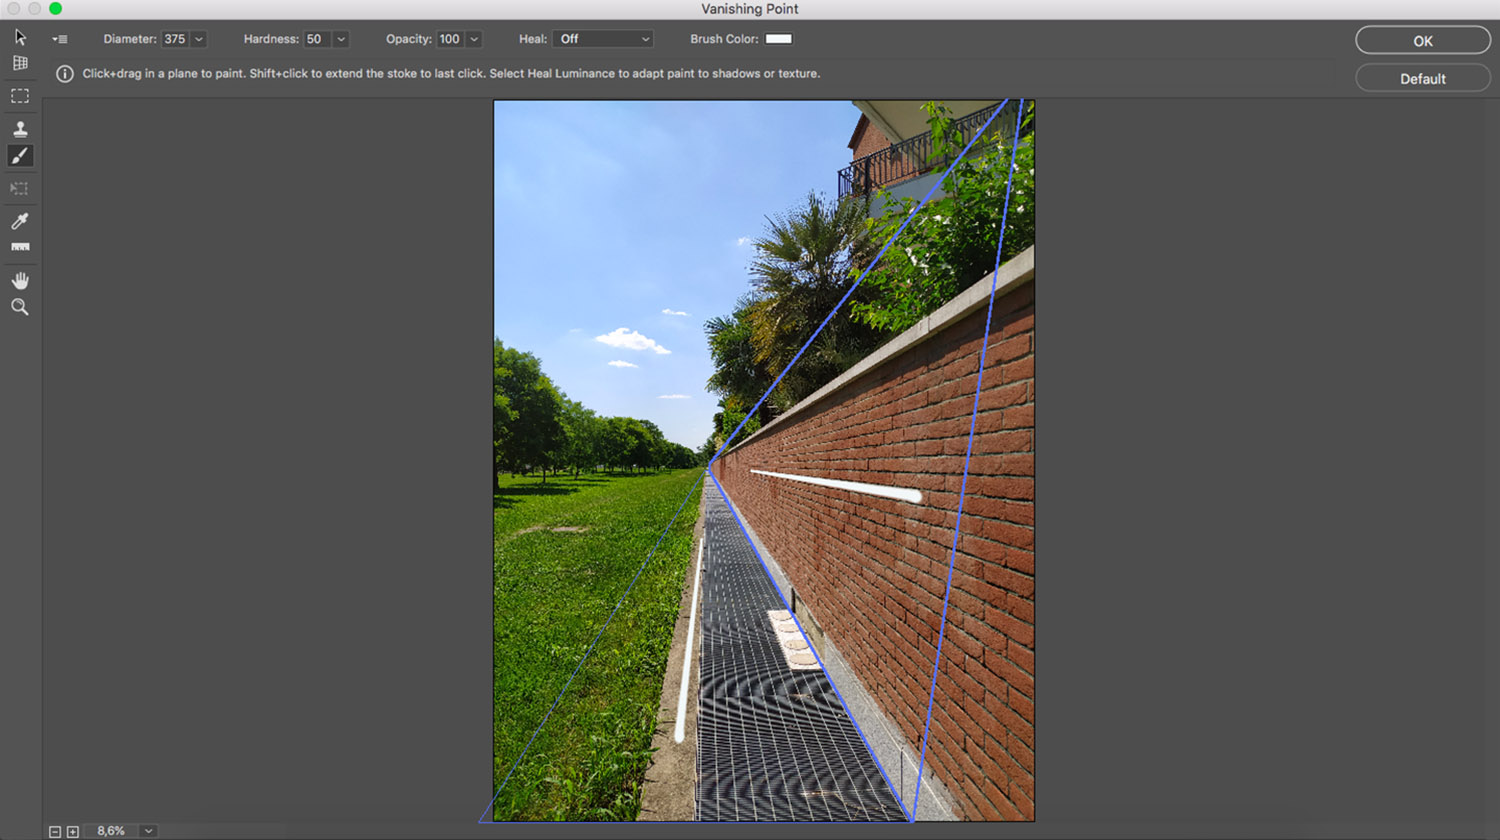 Paint in Vanishing Point in Photoshop